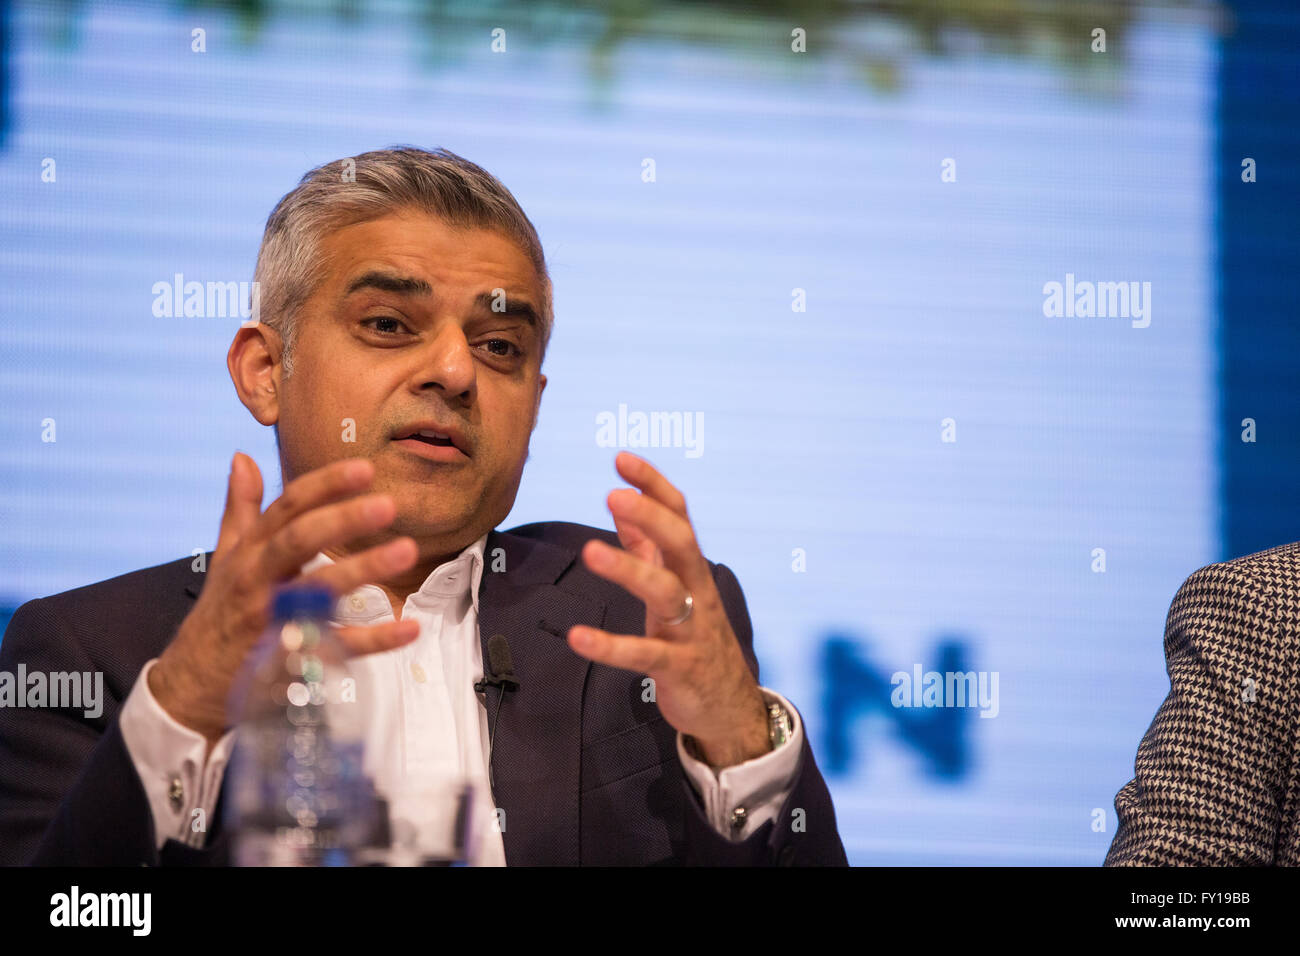 London, UK. 19th April, 2016. Sadiq Khan, Labour Party candidate, addresses the London Mayoral Church Hustings at - Stock Image